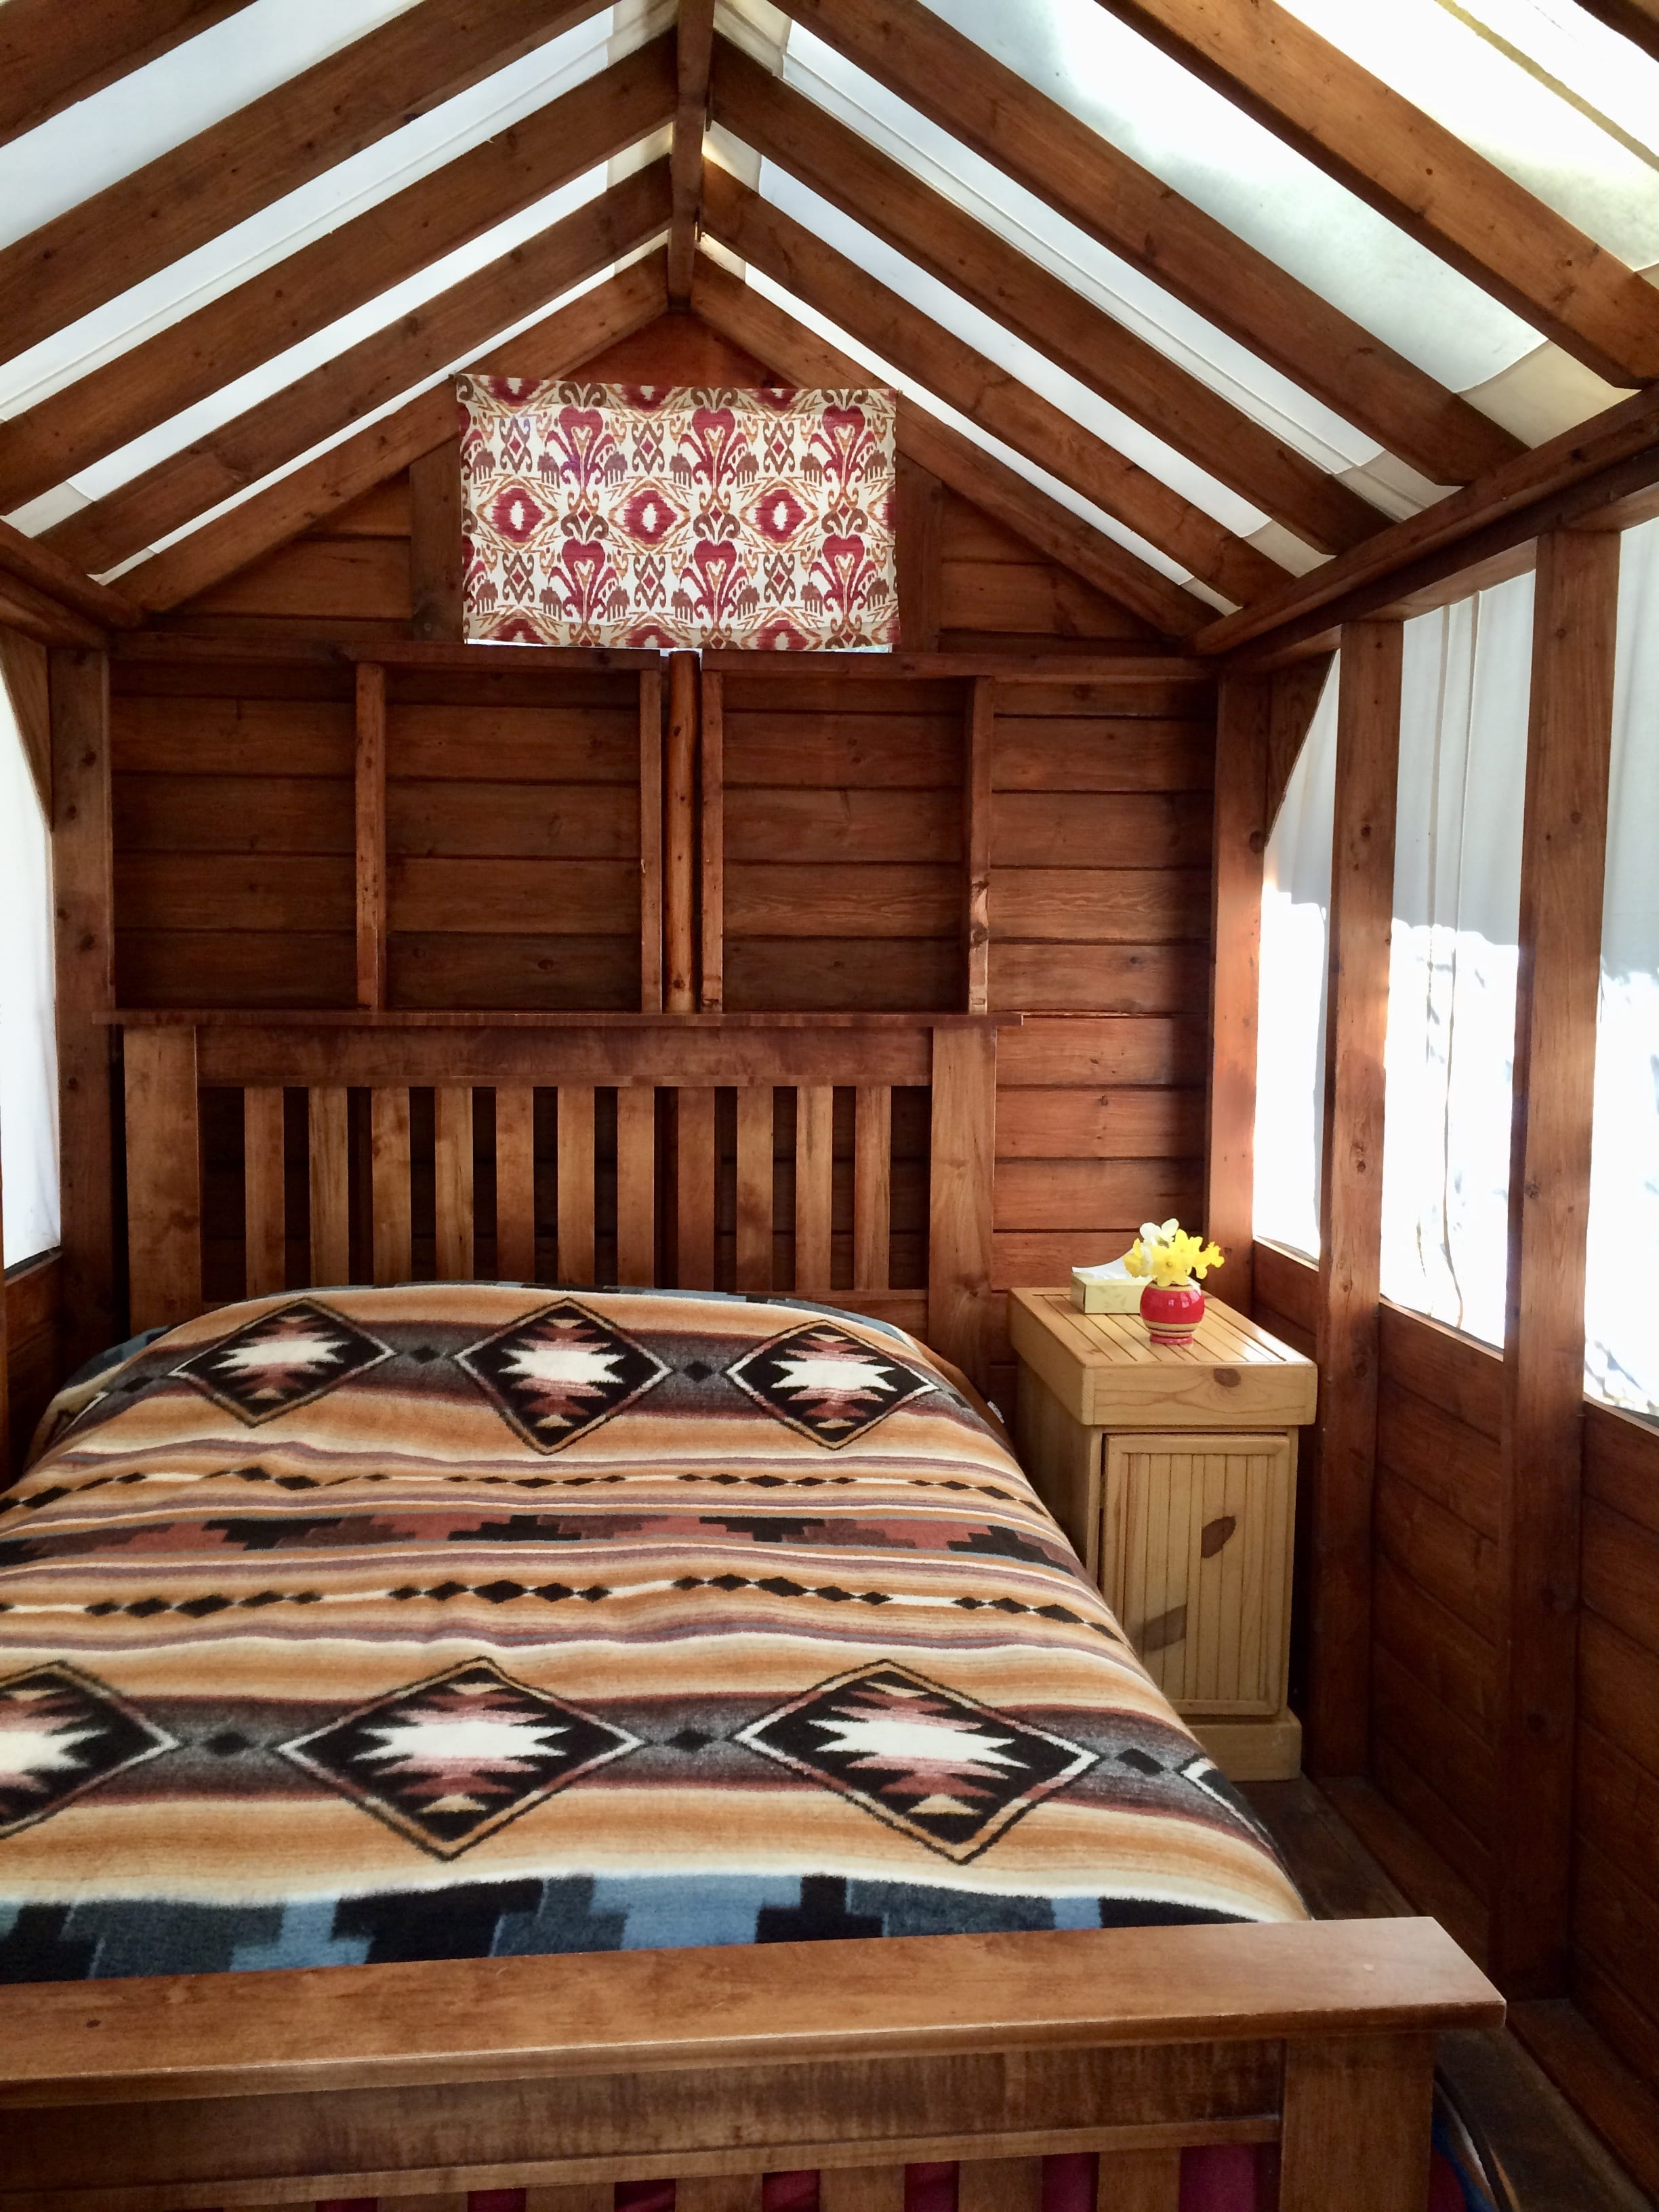 A wooden bed in a canvas cabin